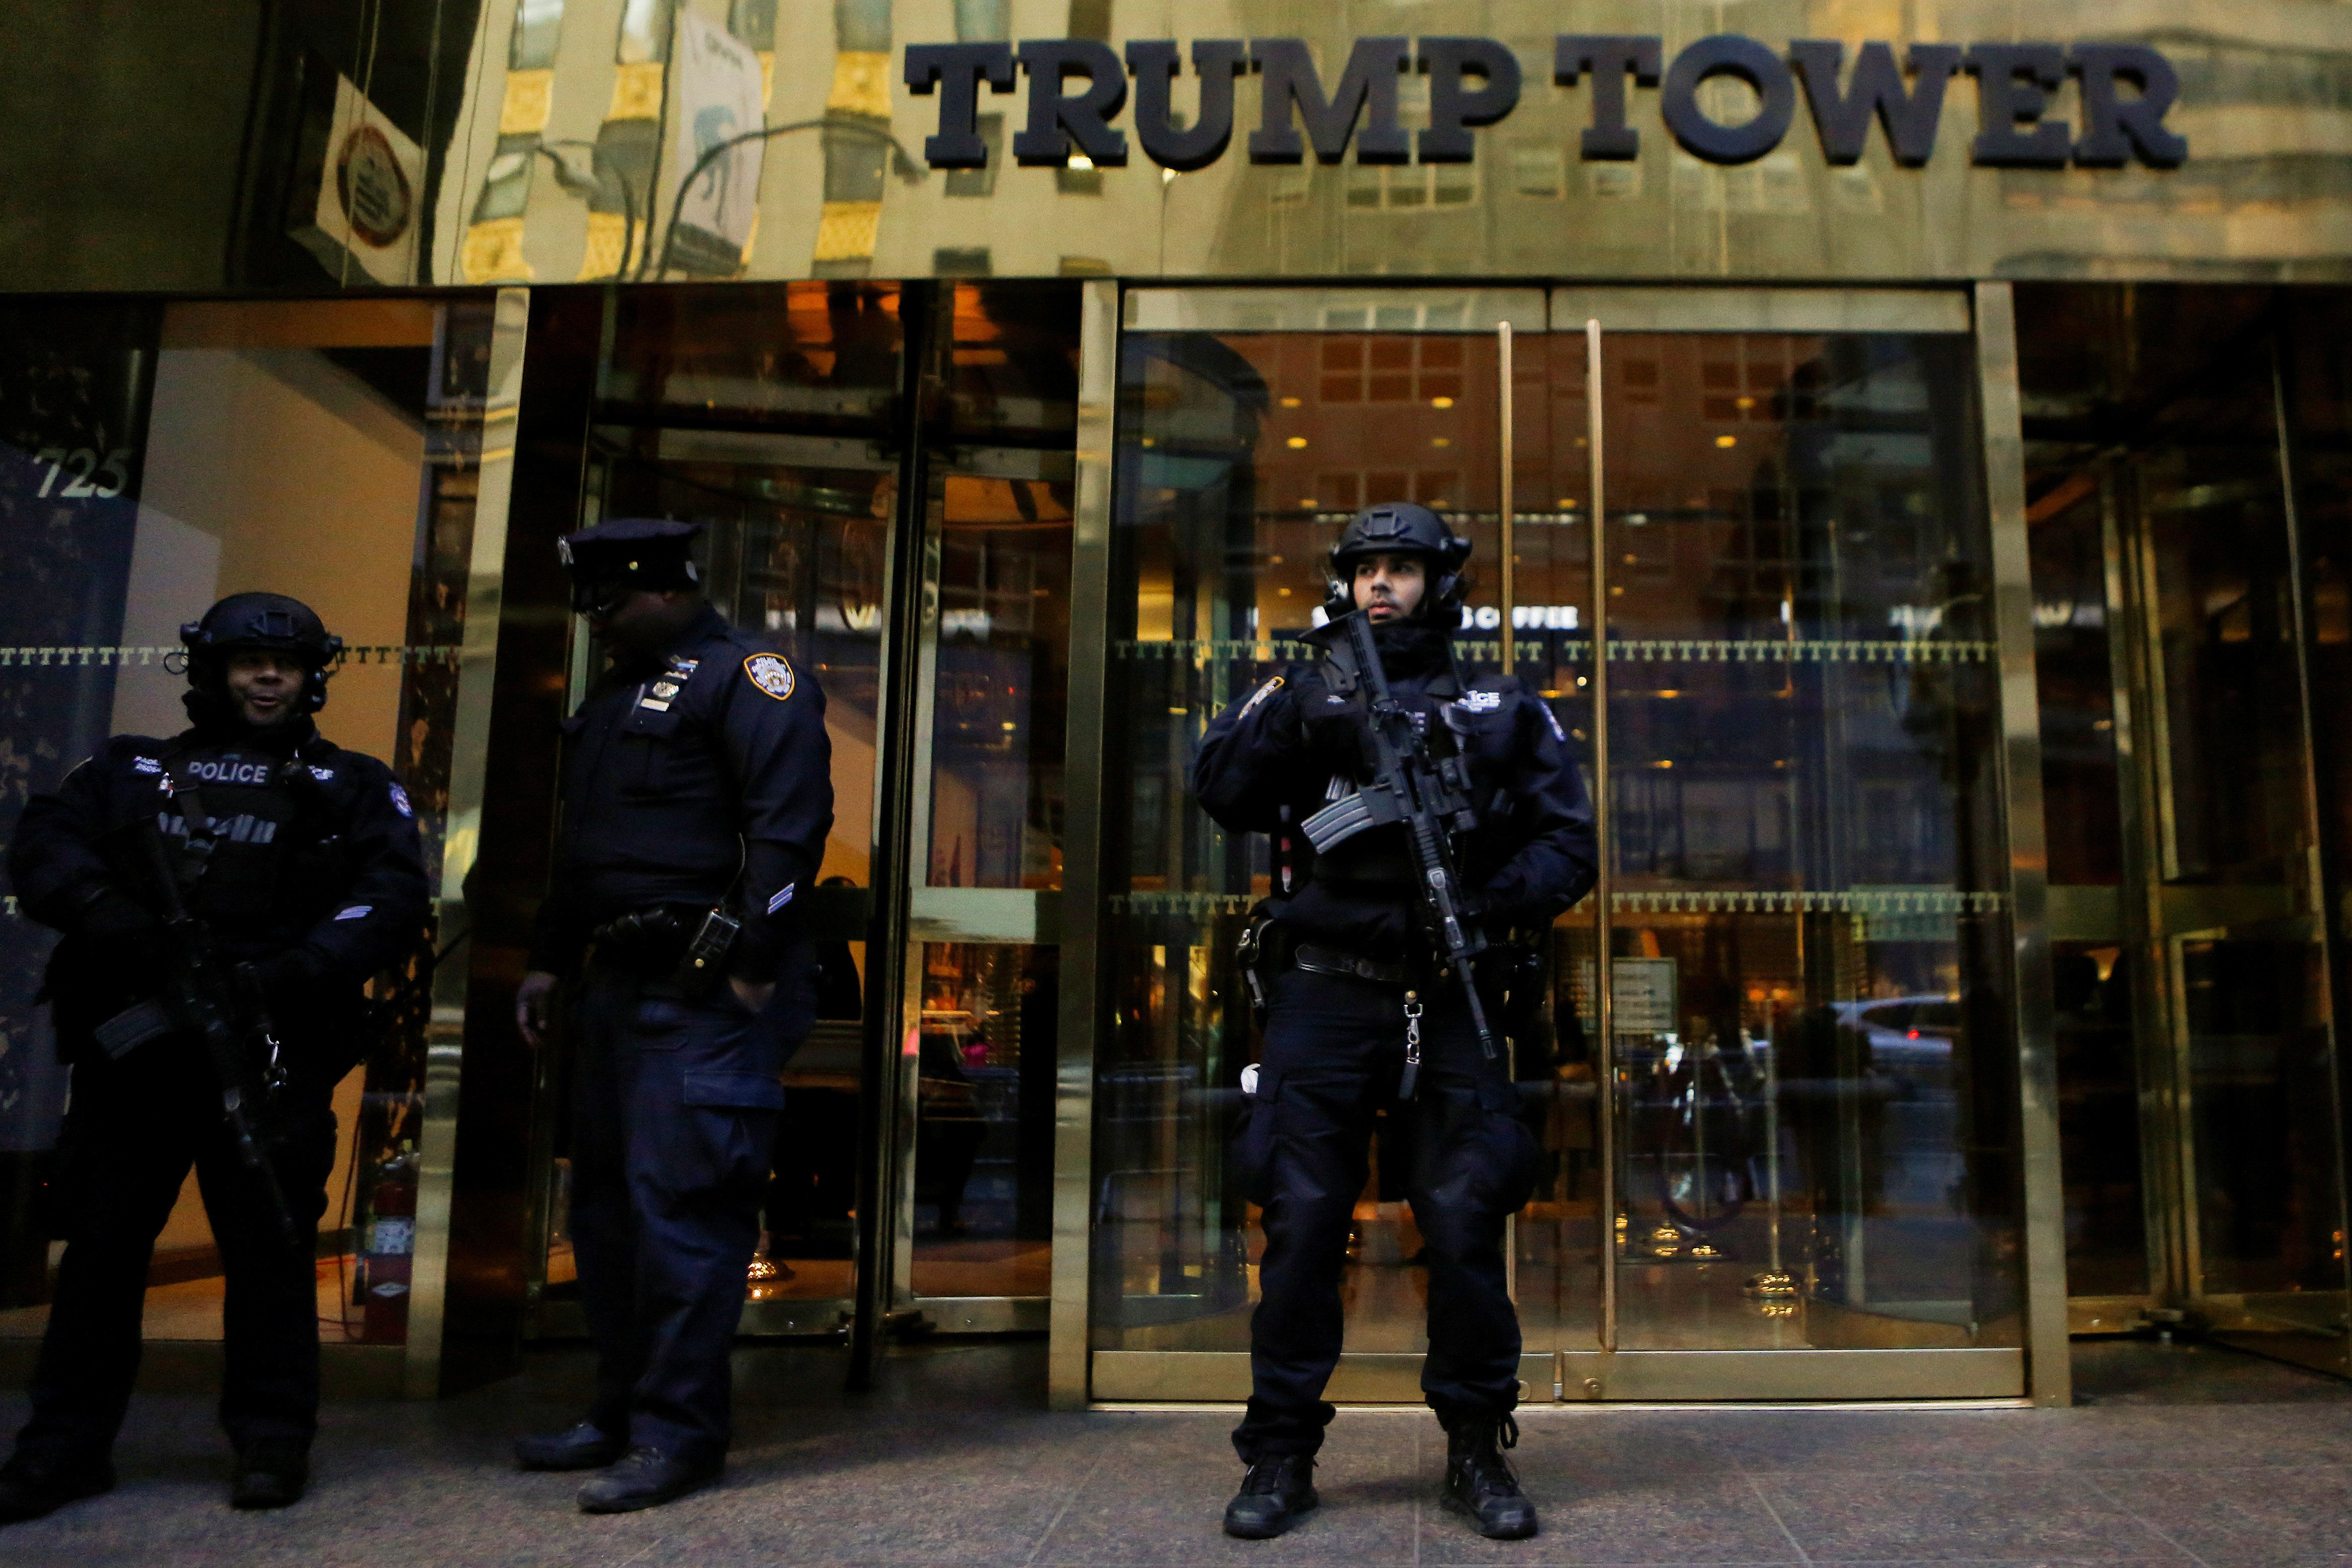 Report: Secret Service Booted To The Sidewalk After Trump Tower Rent Dispute